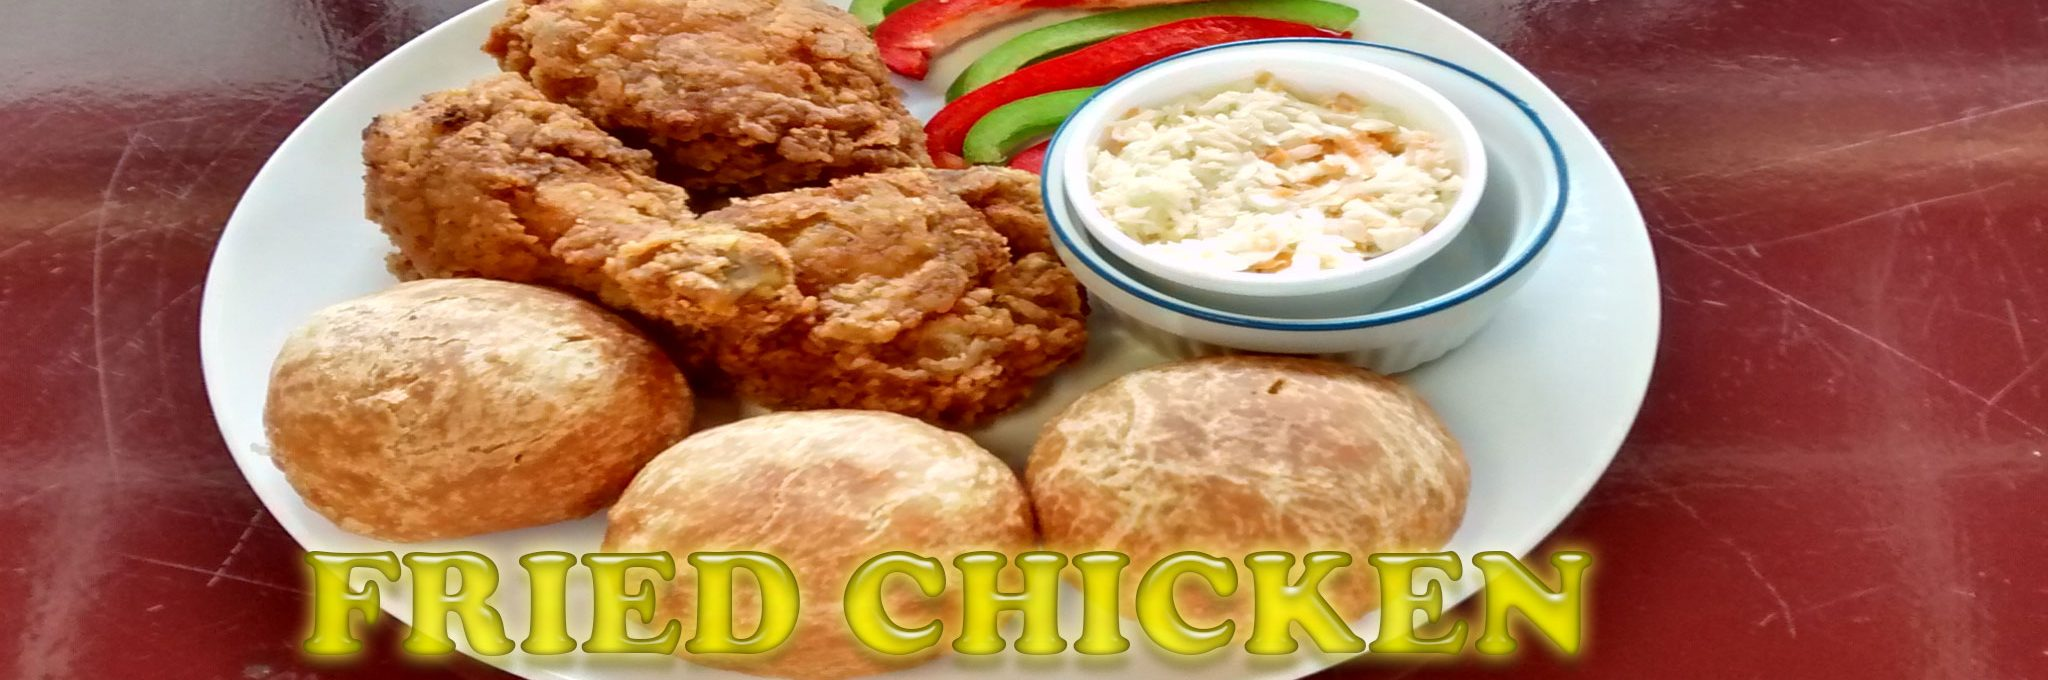 FRIED CHIKET2